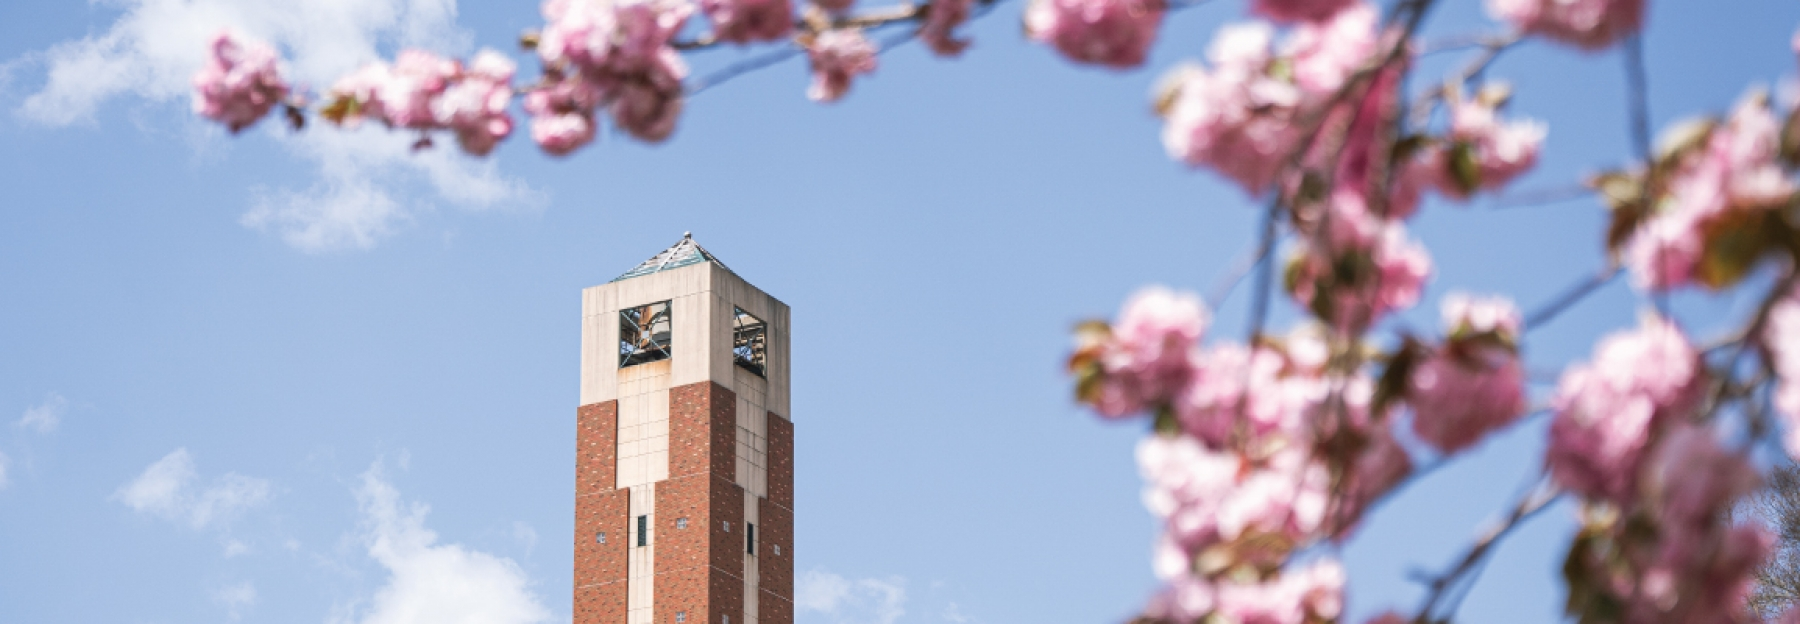 App State Bell Tower with spring flowers in view.